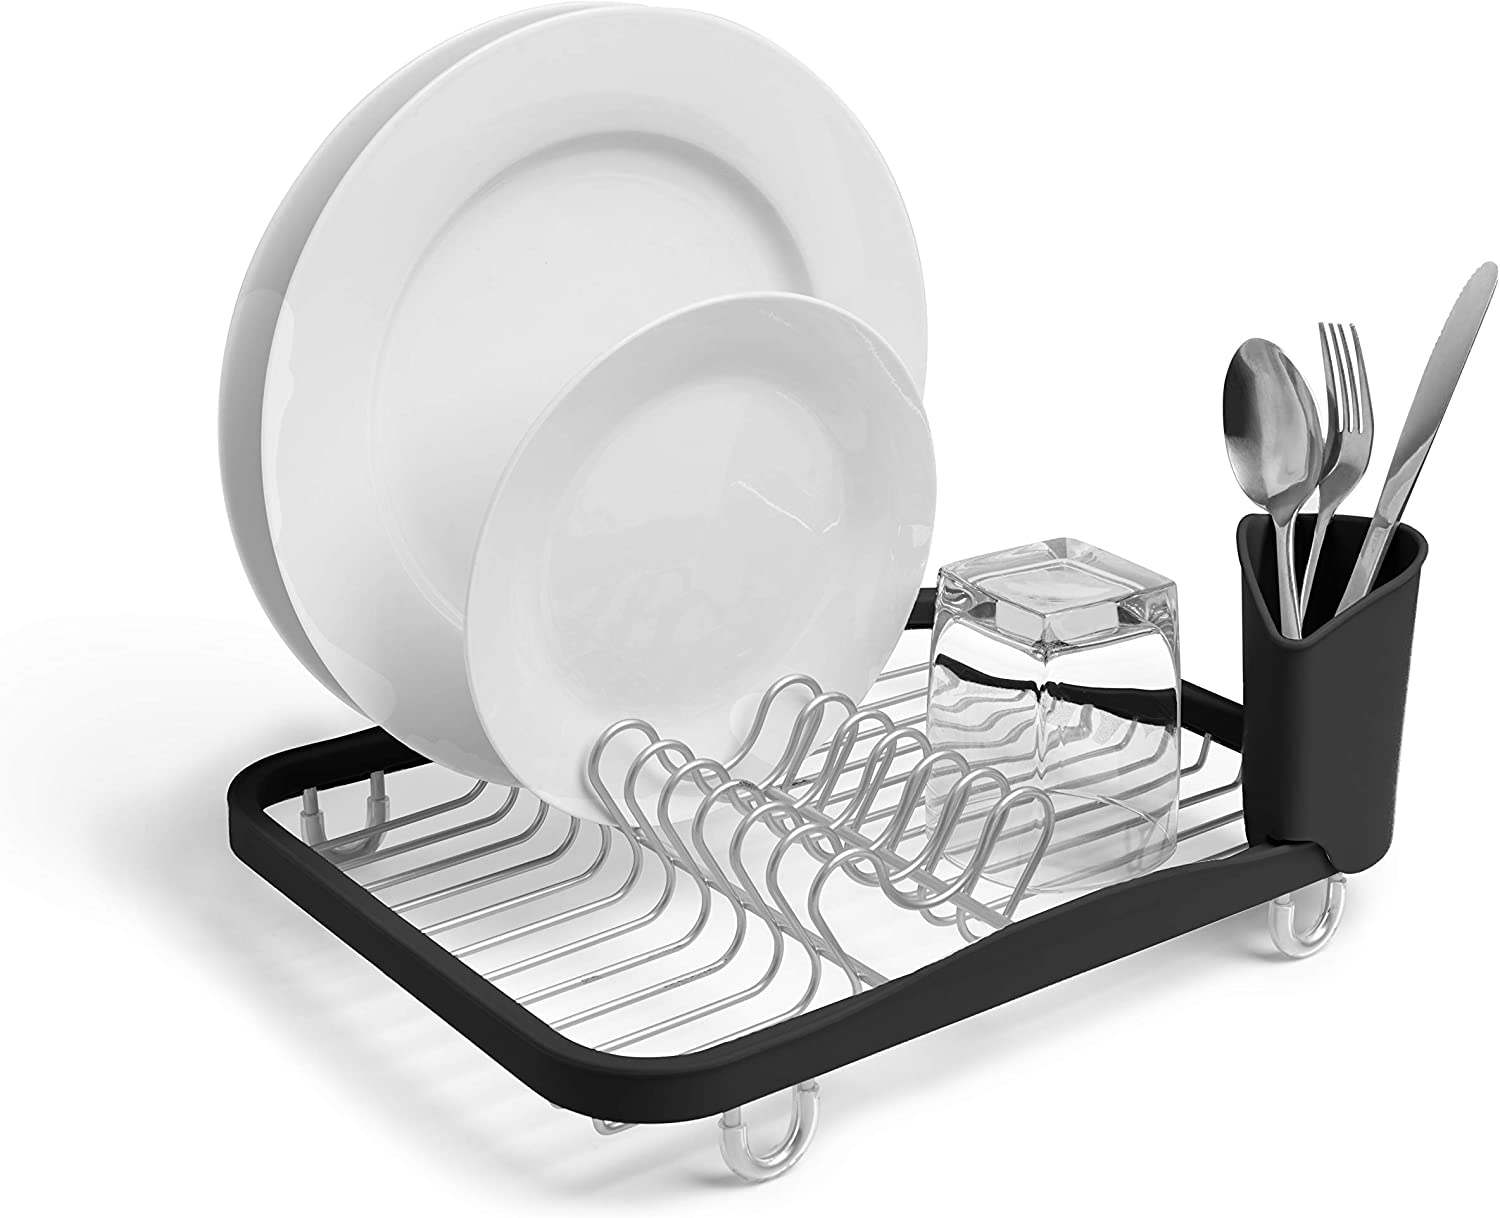 Umbra 330065-744 Sinkin Drying Rack – Dish Drainer Caddy with Removable Cutlery Holder Fits in Sink or on Counter top, Medium